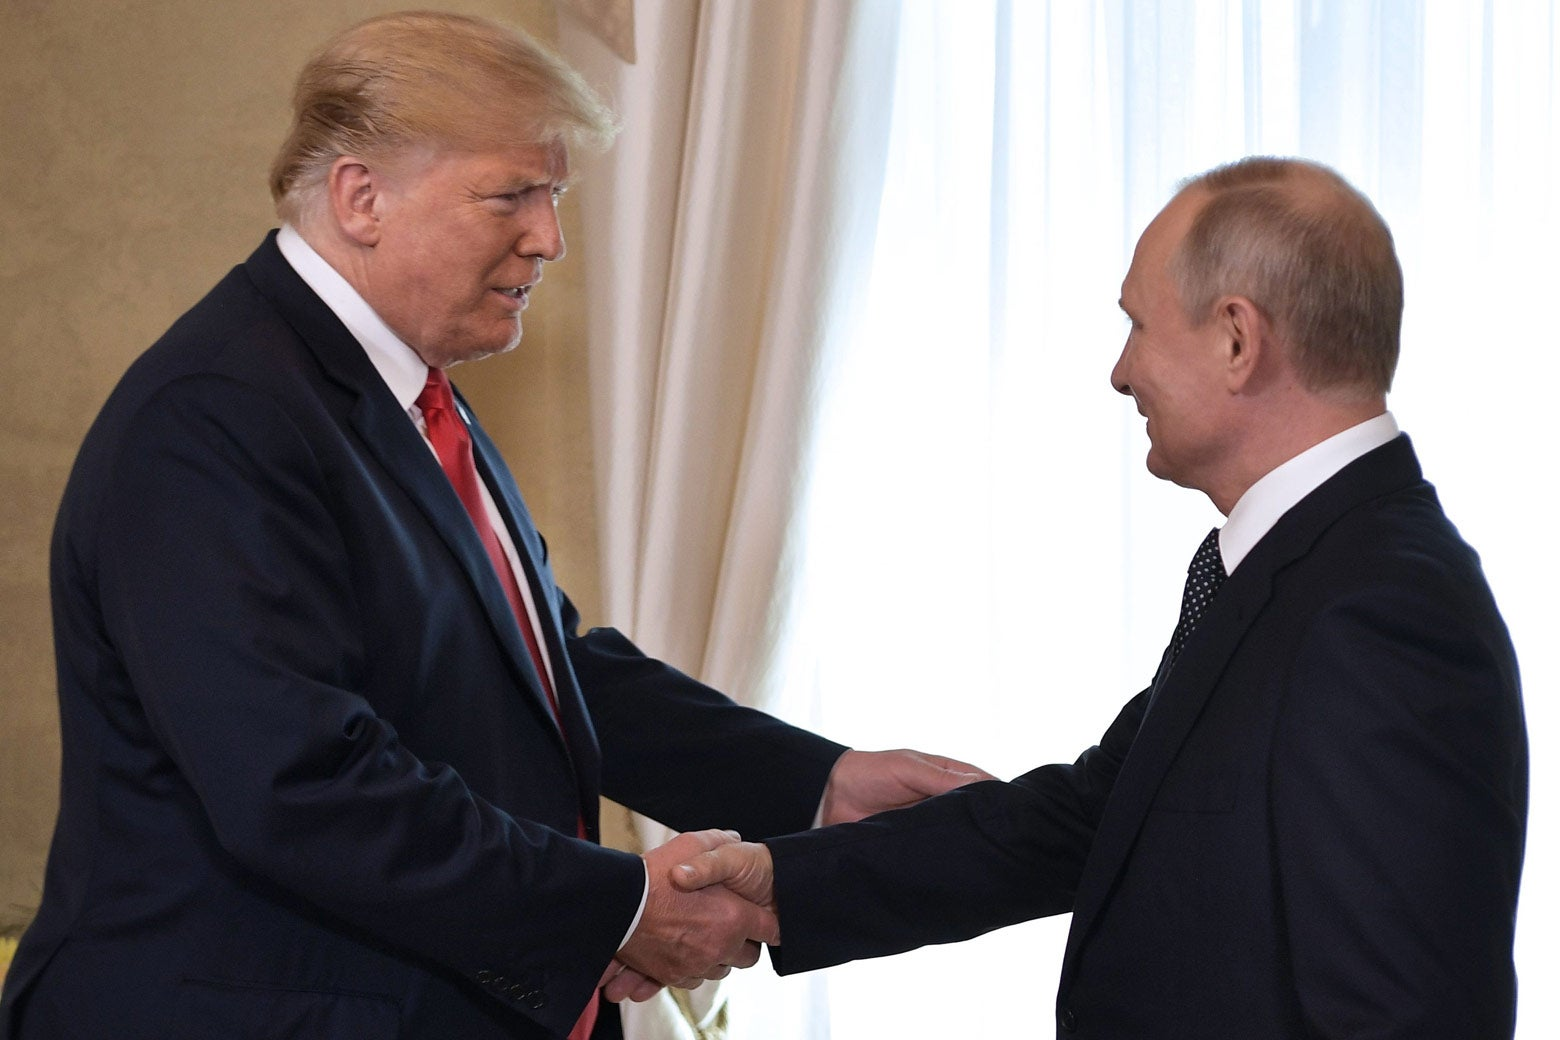 U.S. President Donald Trump shakes hands with Russia's President Vladimir Putin on July 16.